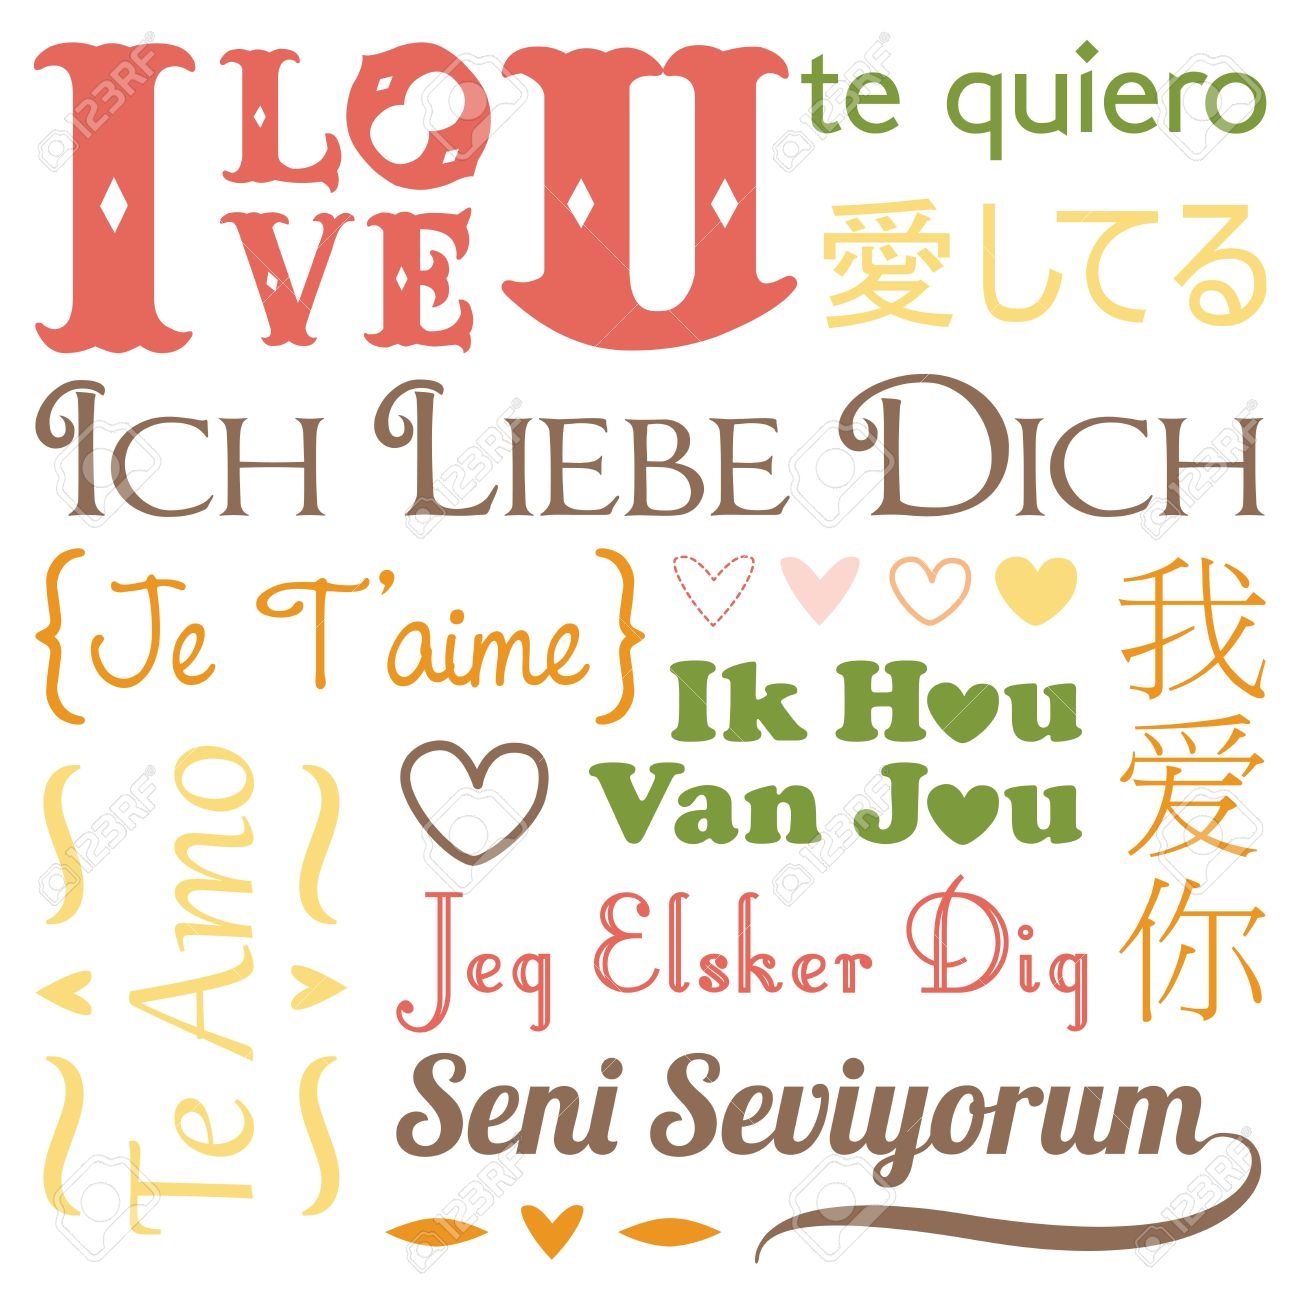 A vector illustration of i love you word in different languages a vector illustration of i love you word in different languages stock vector 16459783 thecheapjerseys Choice Image